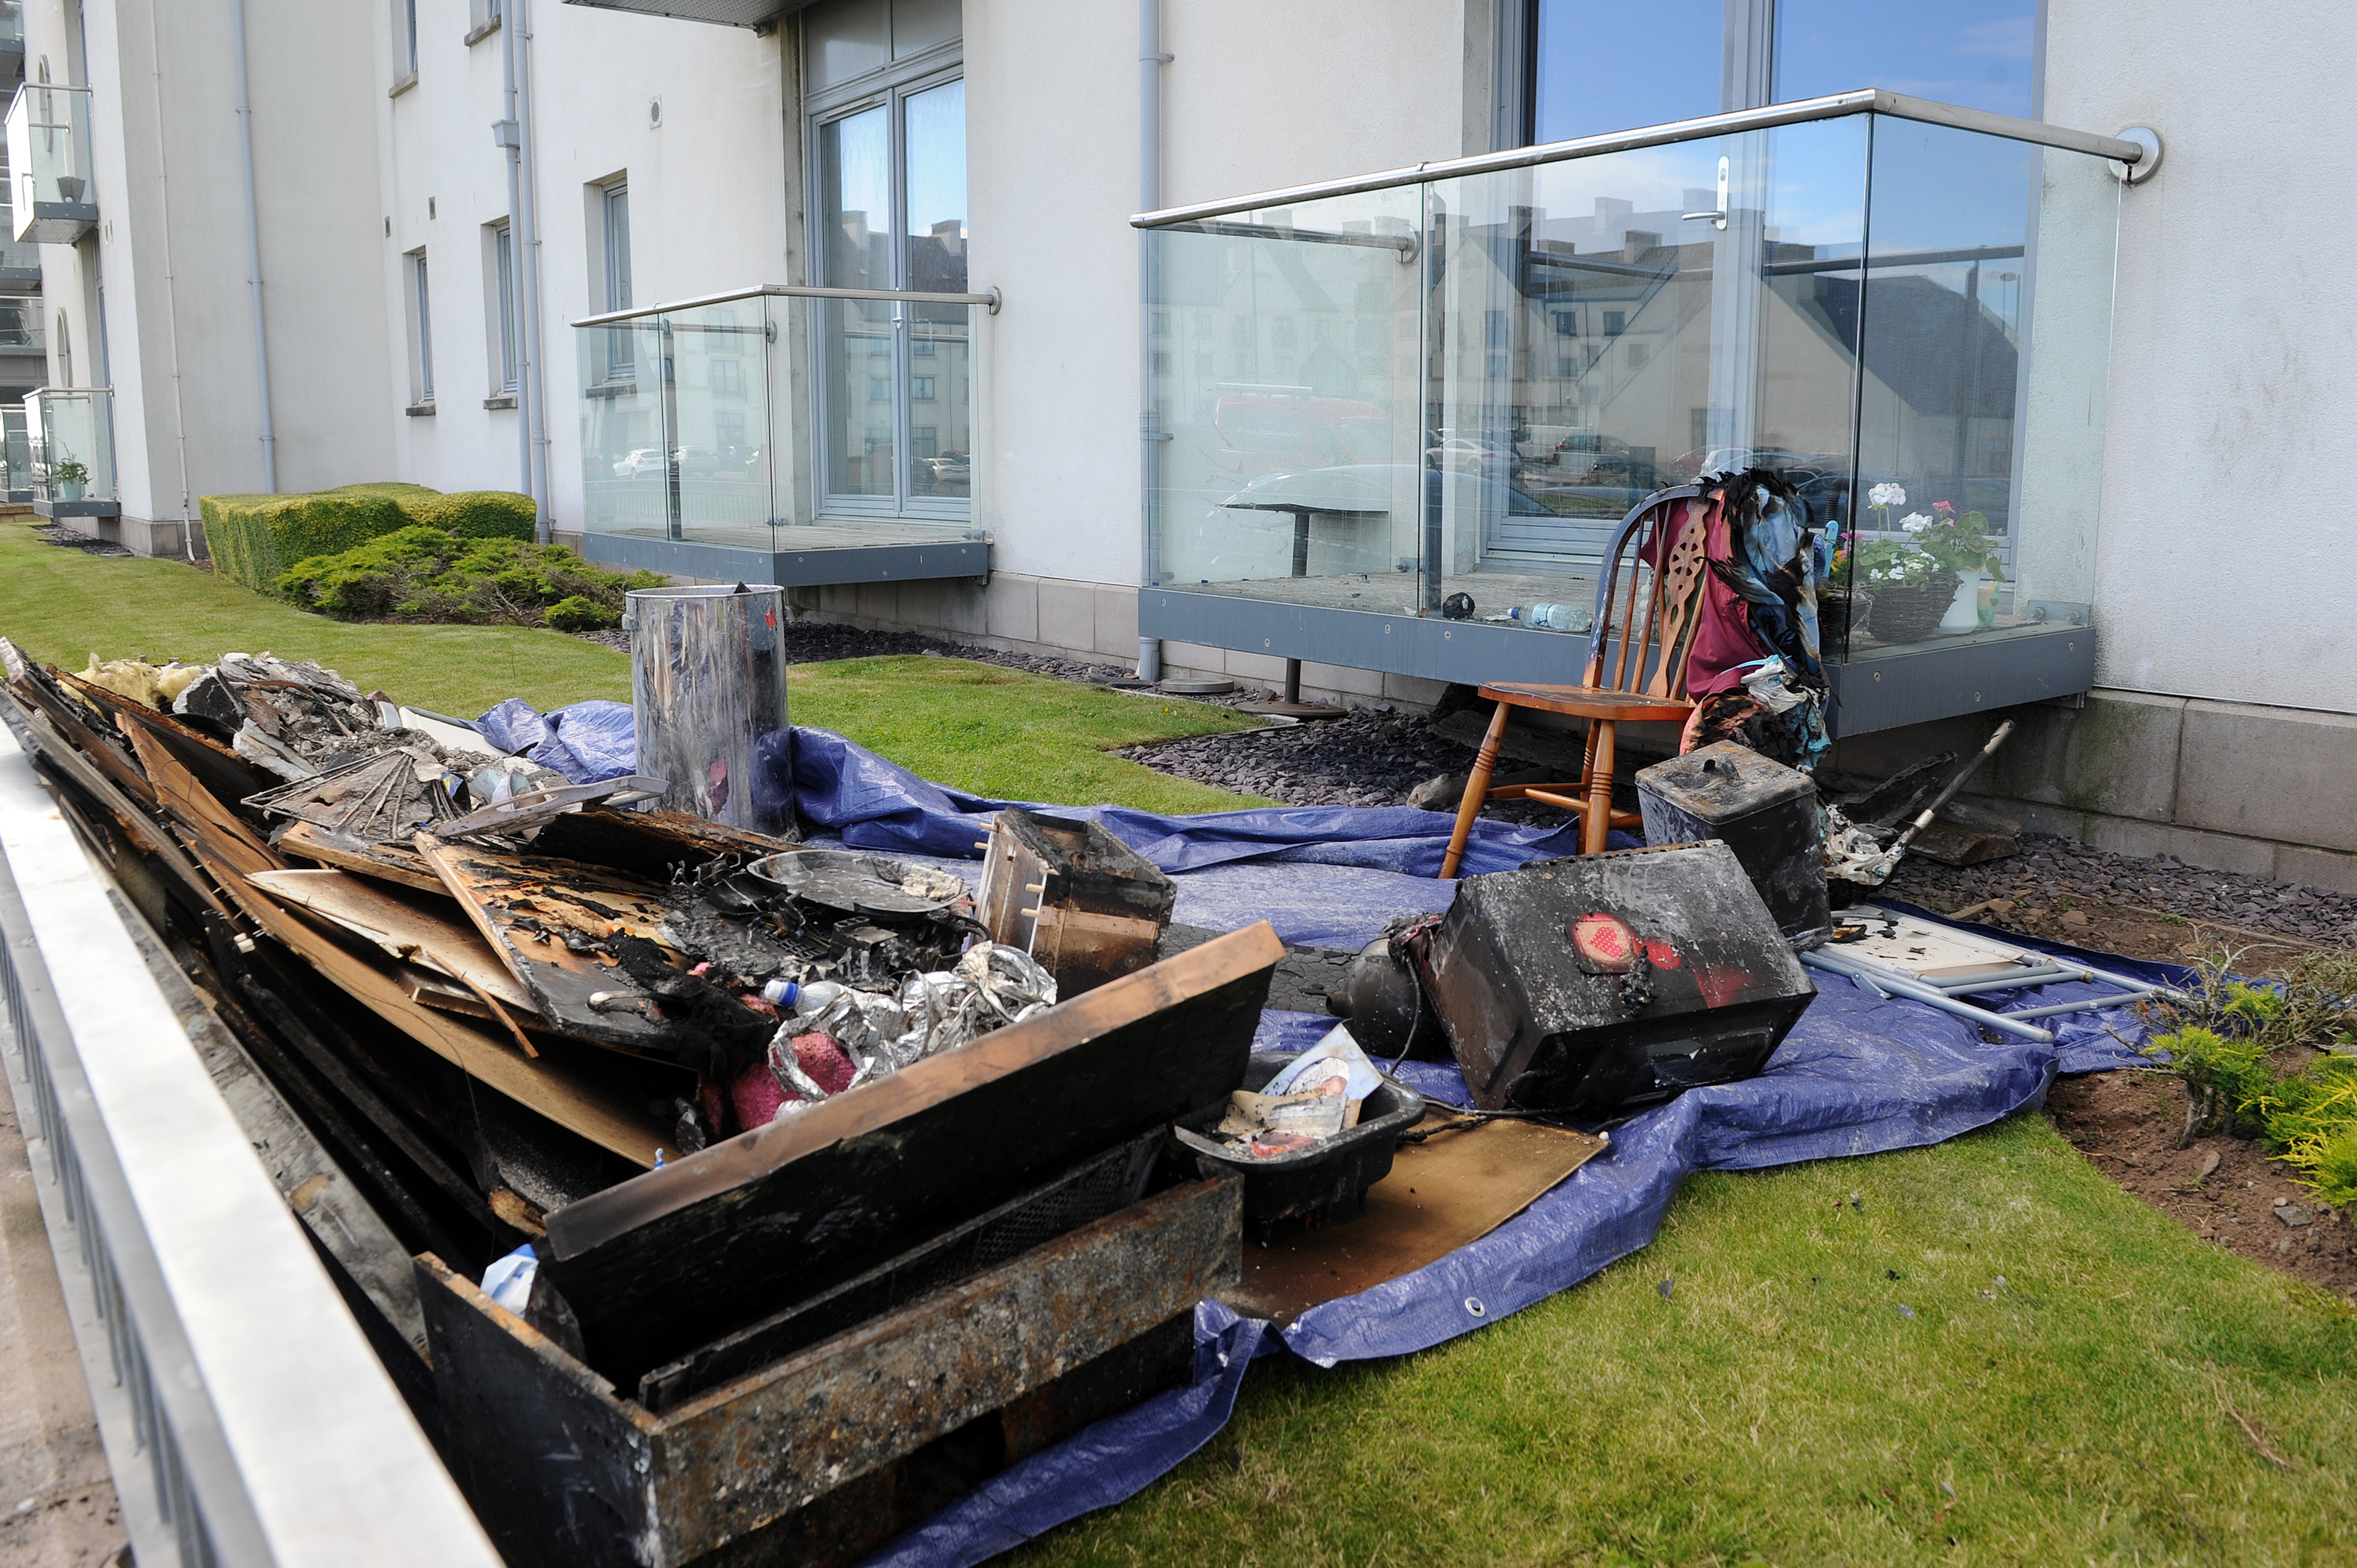 Items destroyed by the fire on Saturday night.